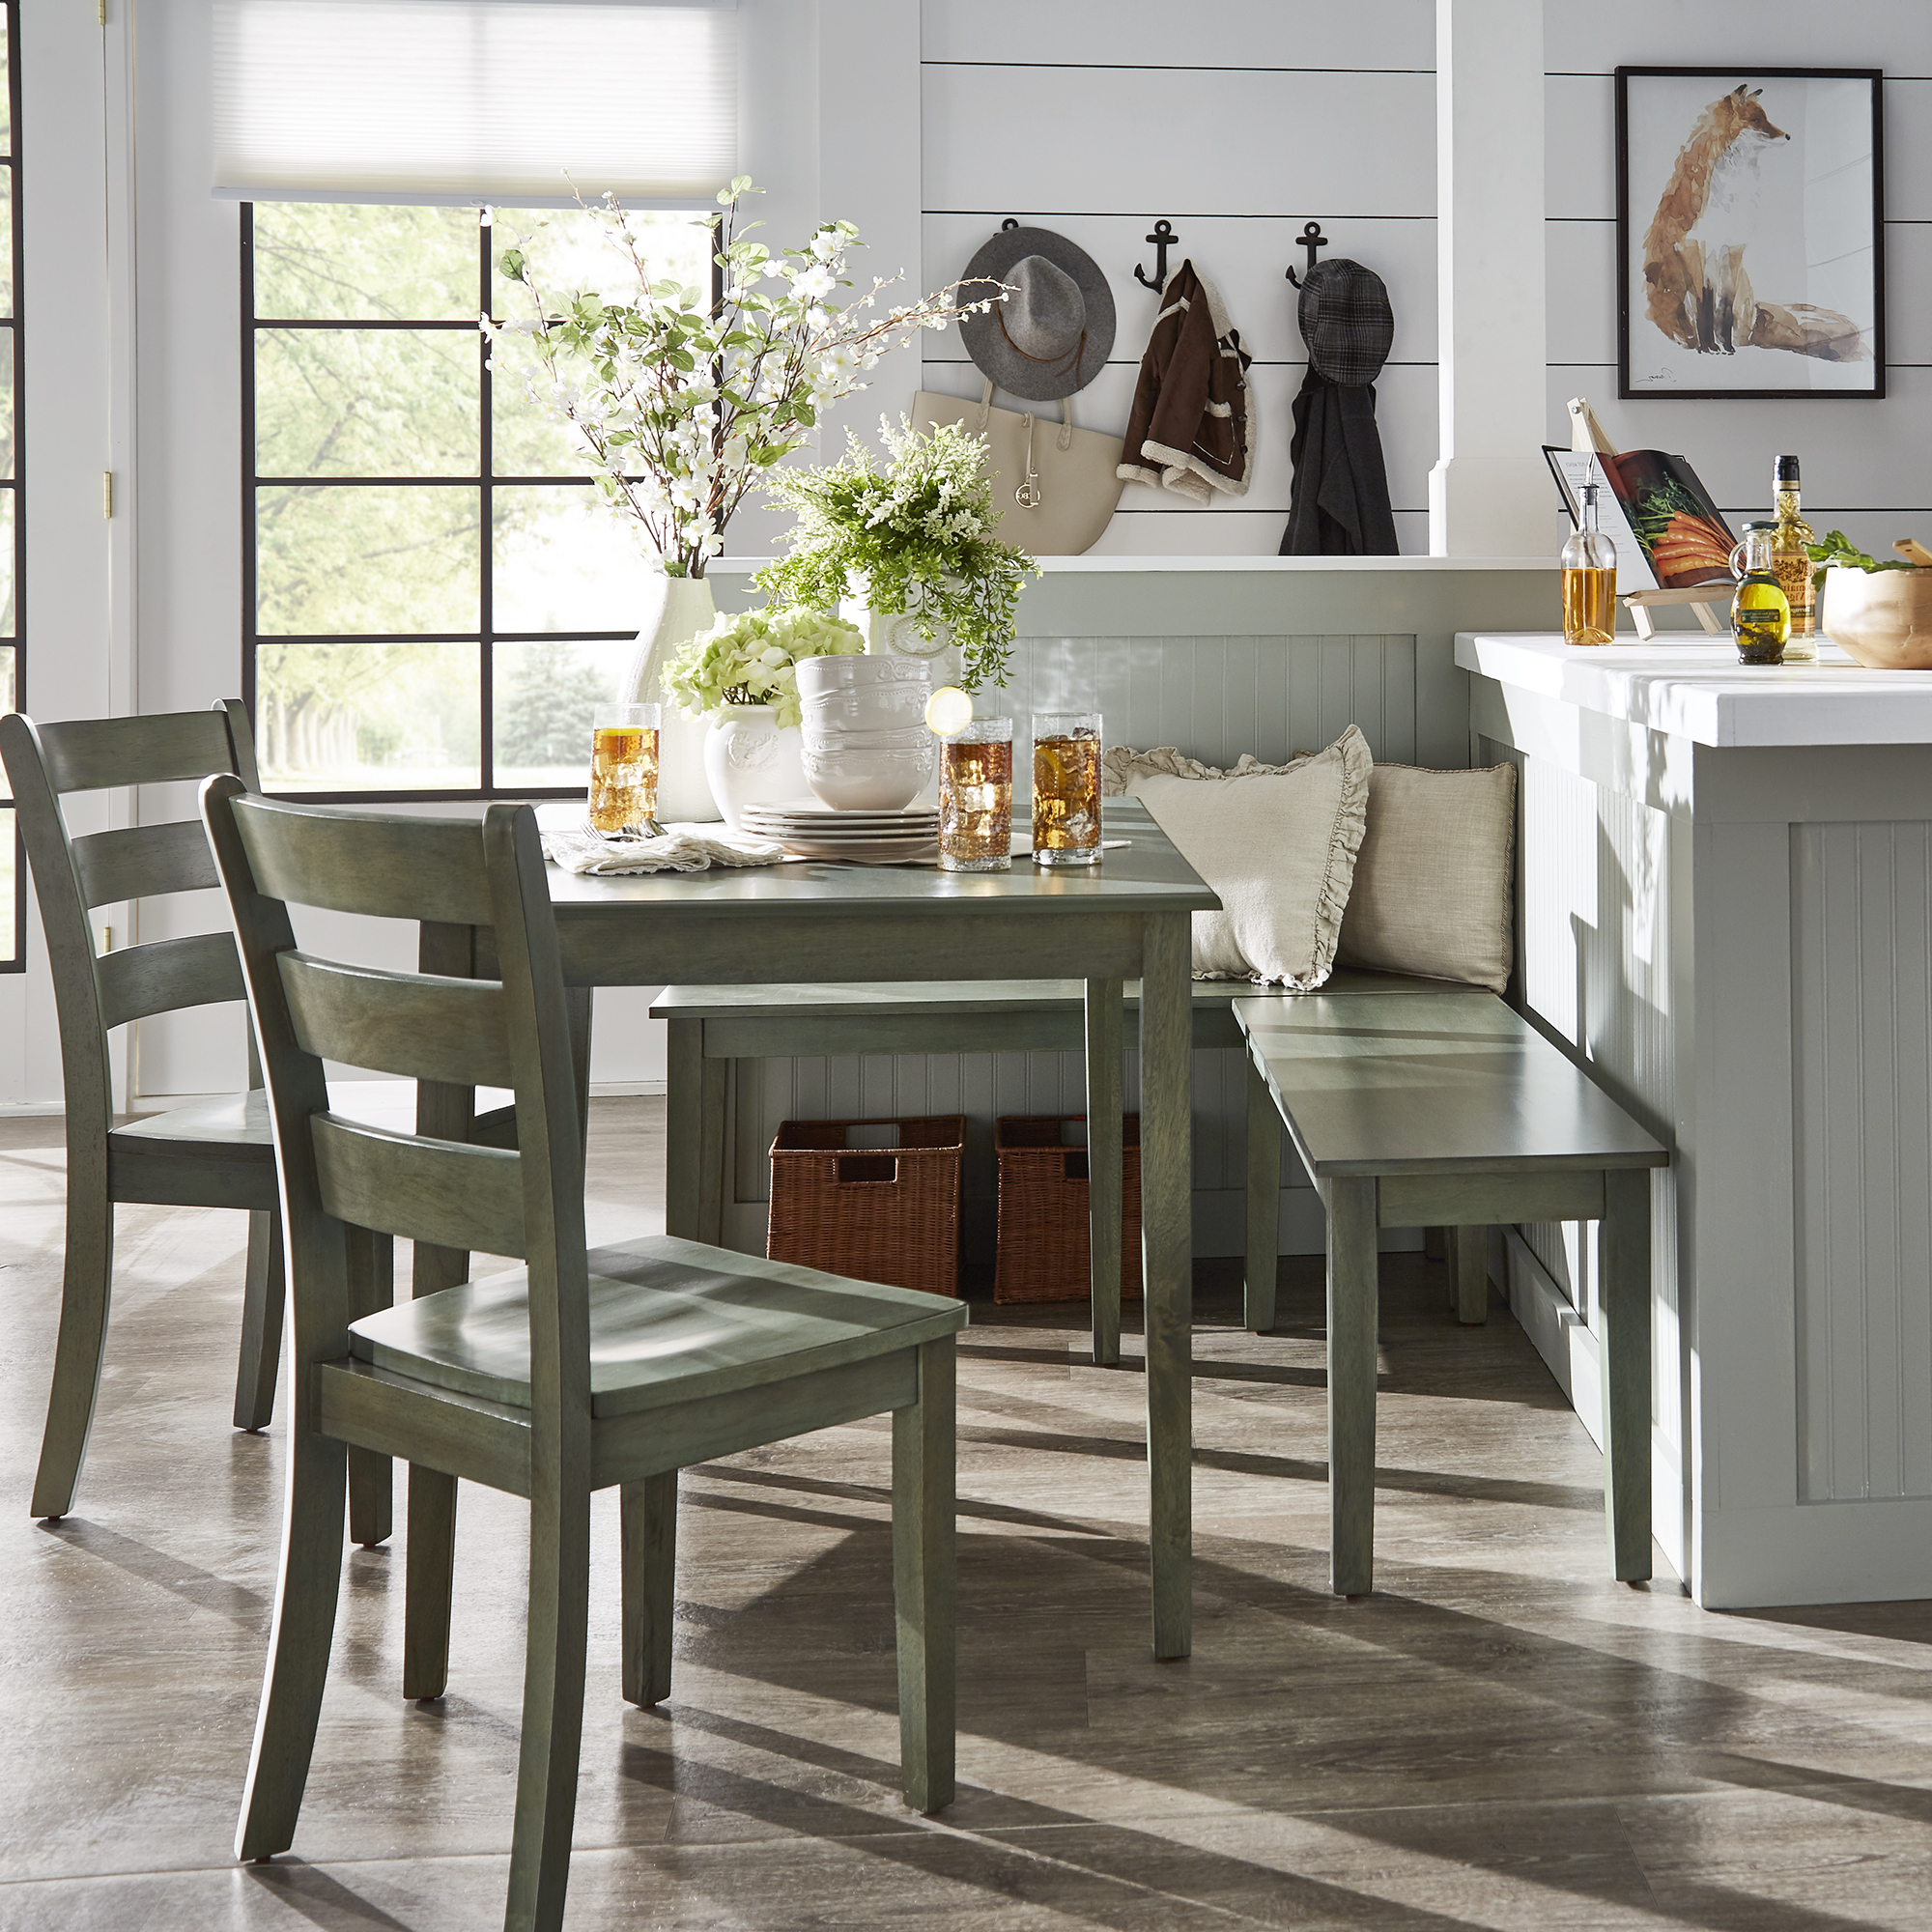 Preferred Weston Home Lexington 5 Piece Breakfast Nook Dining Set, Rectangular Pertaining To 5 Piece Breakfast Nook Dining Sets (View 17 of 25)